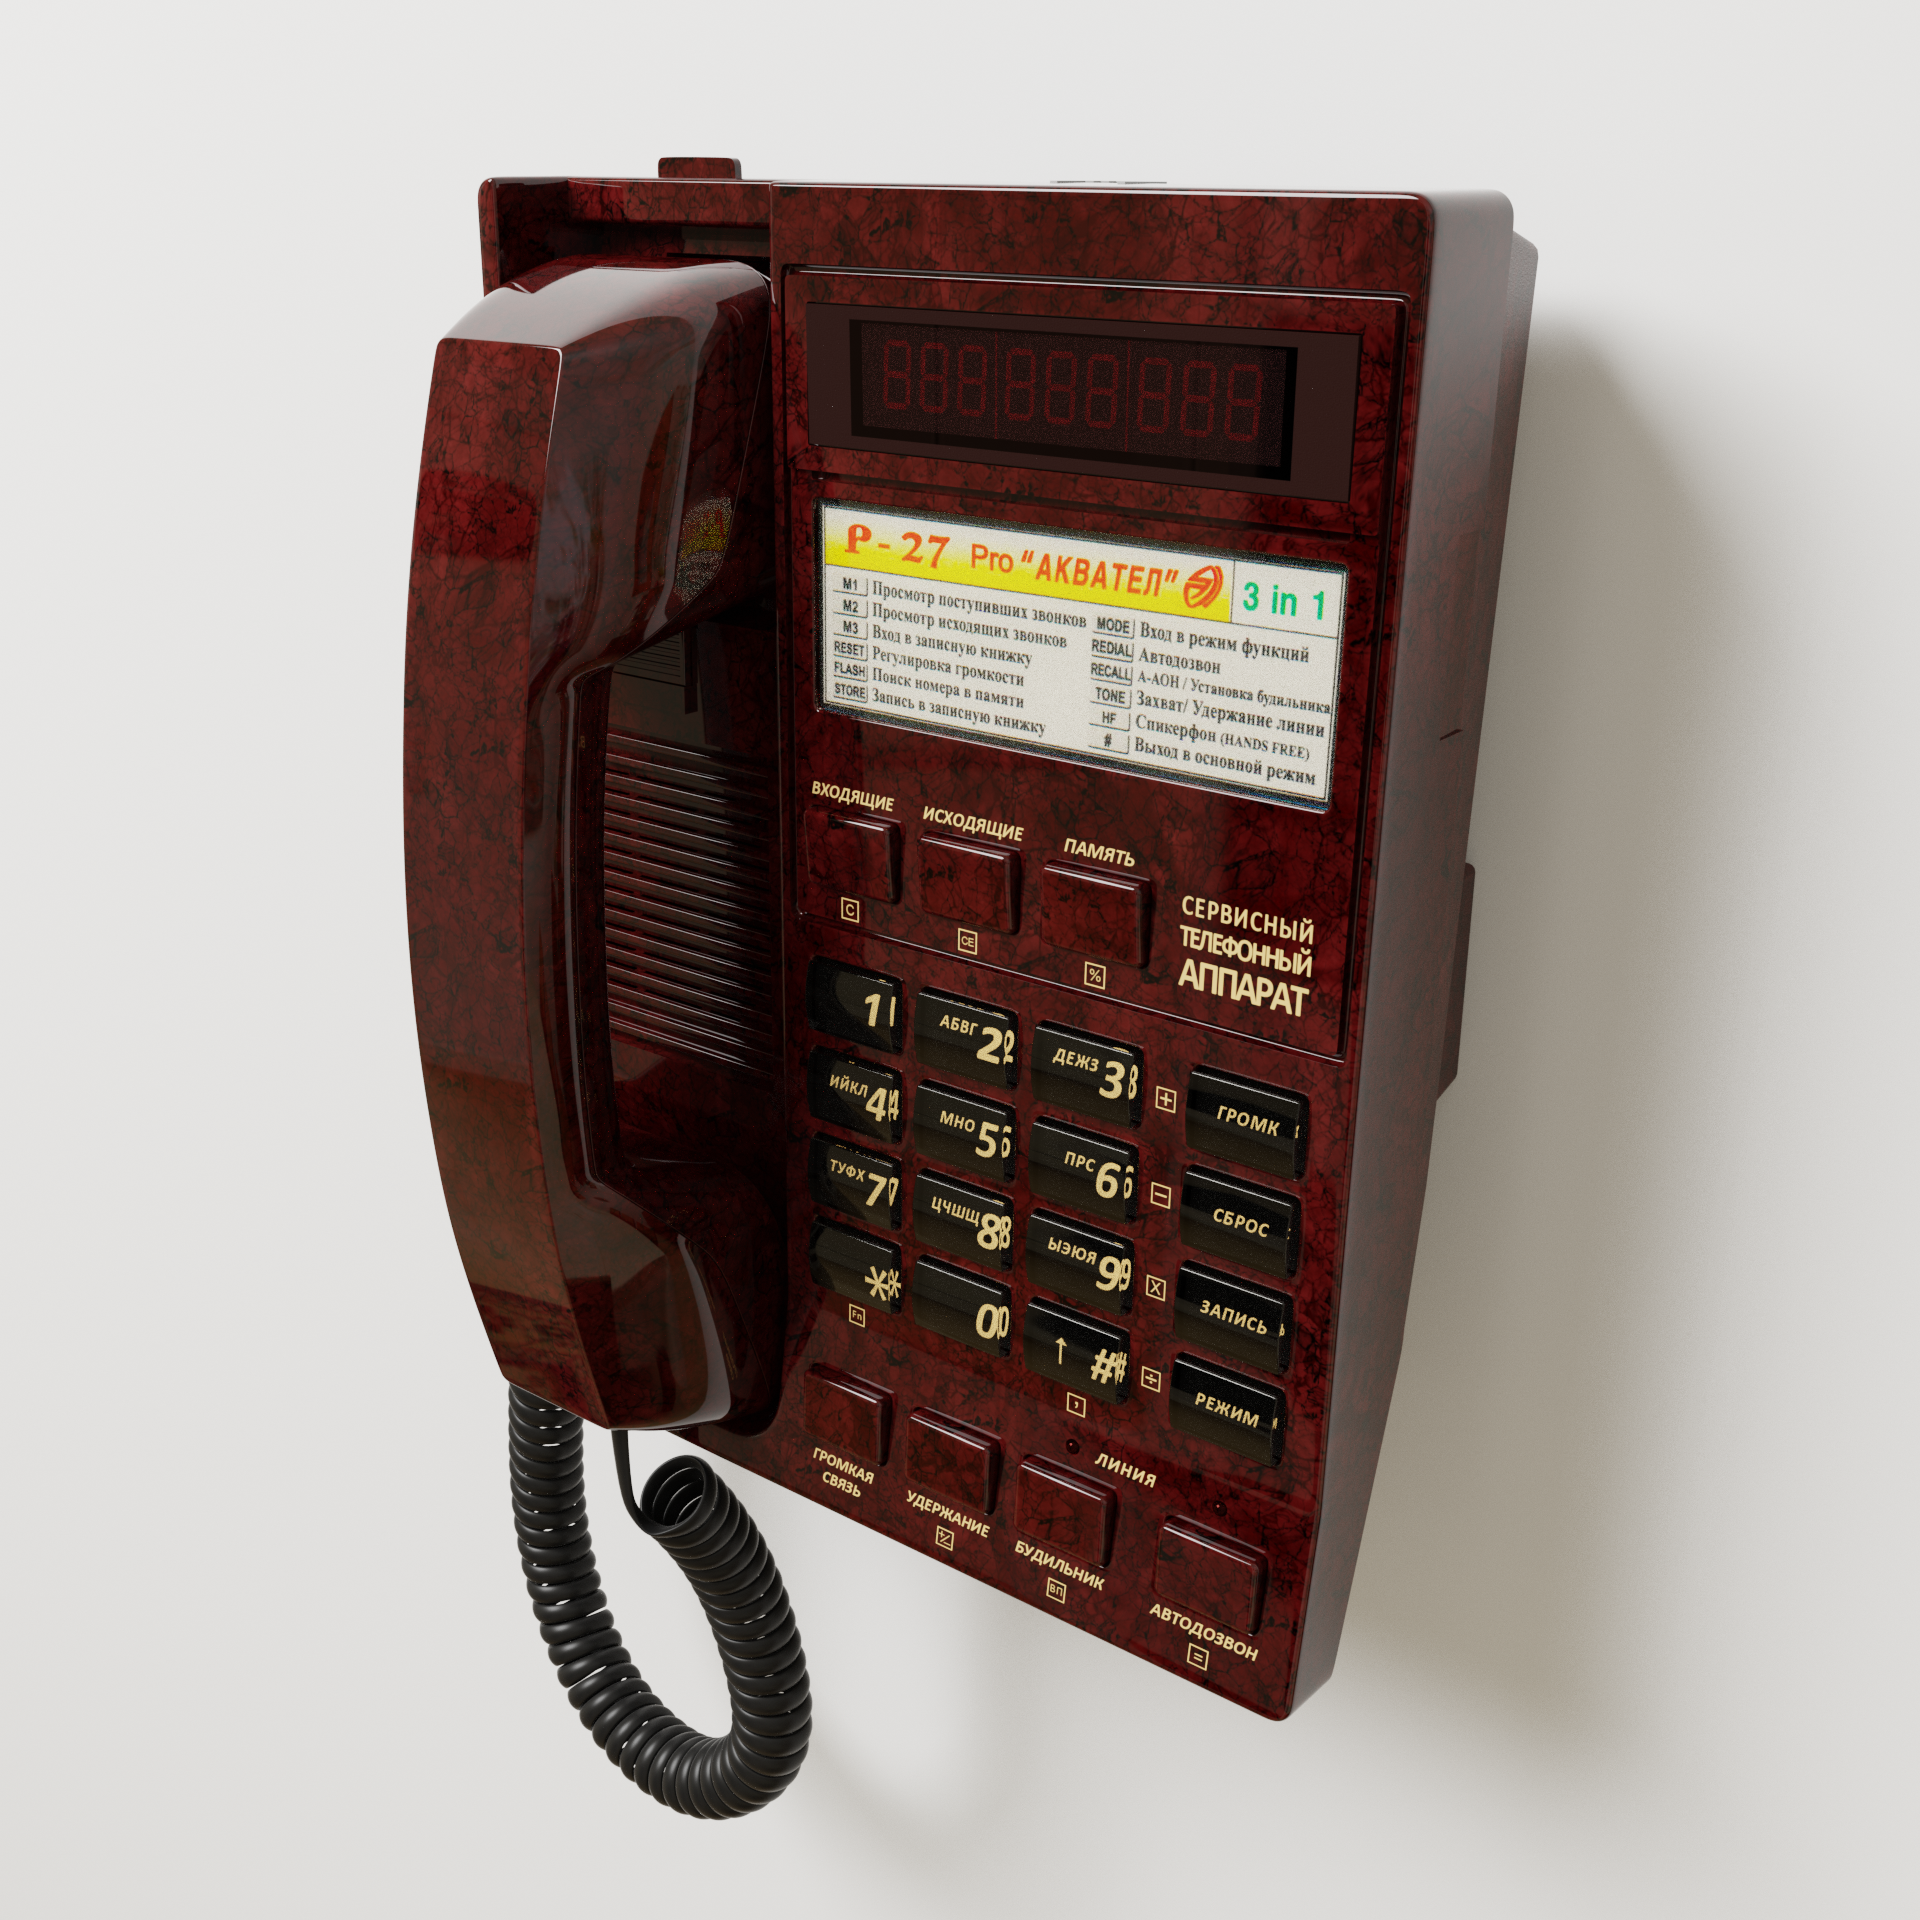 Telephone P-27 preview image 4